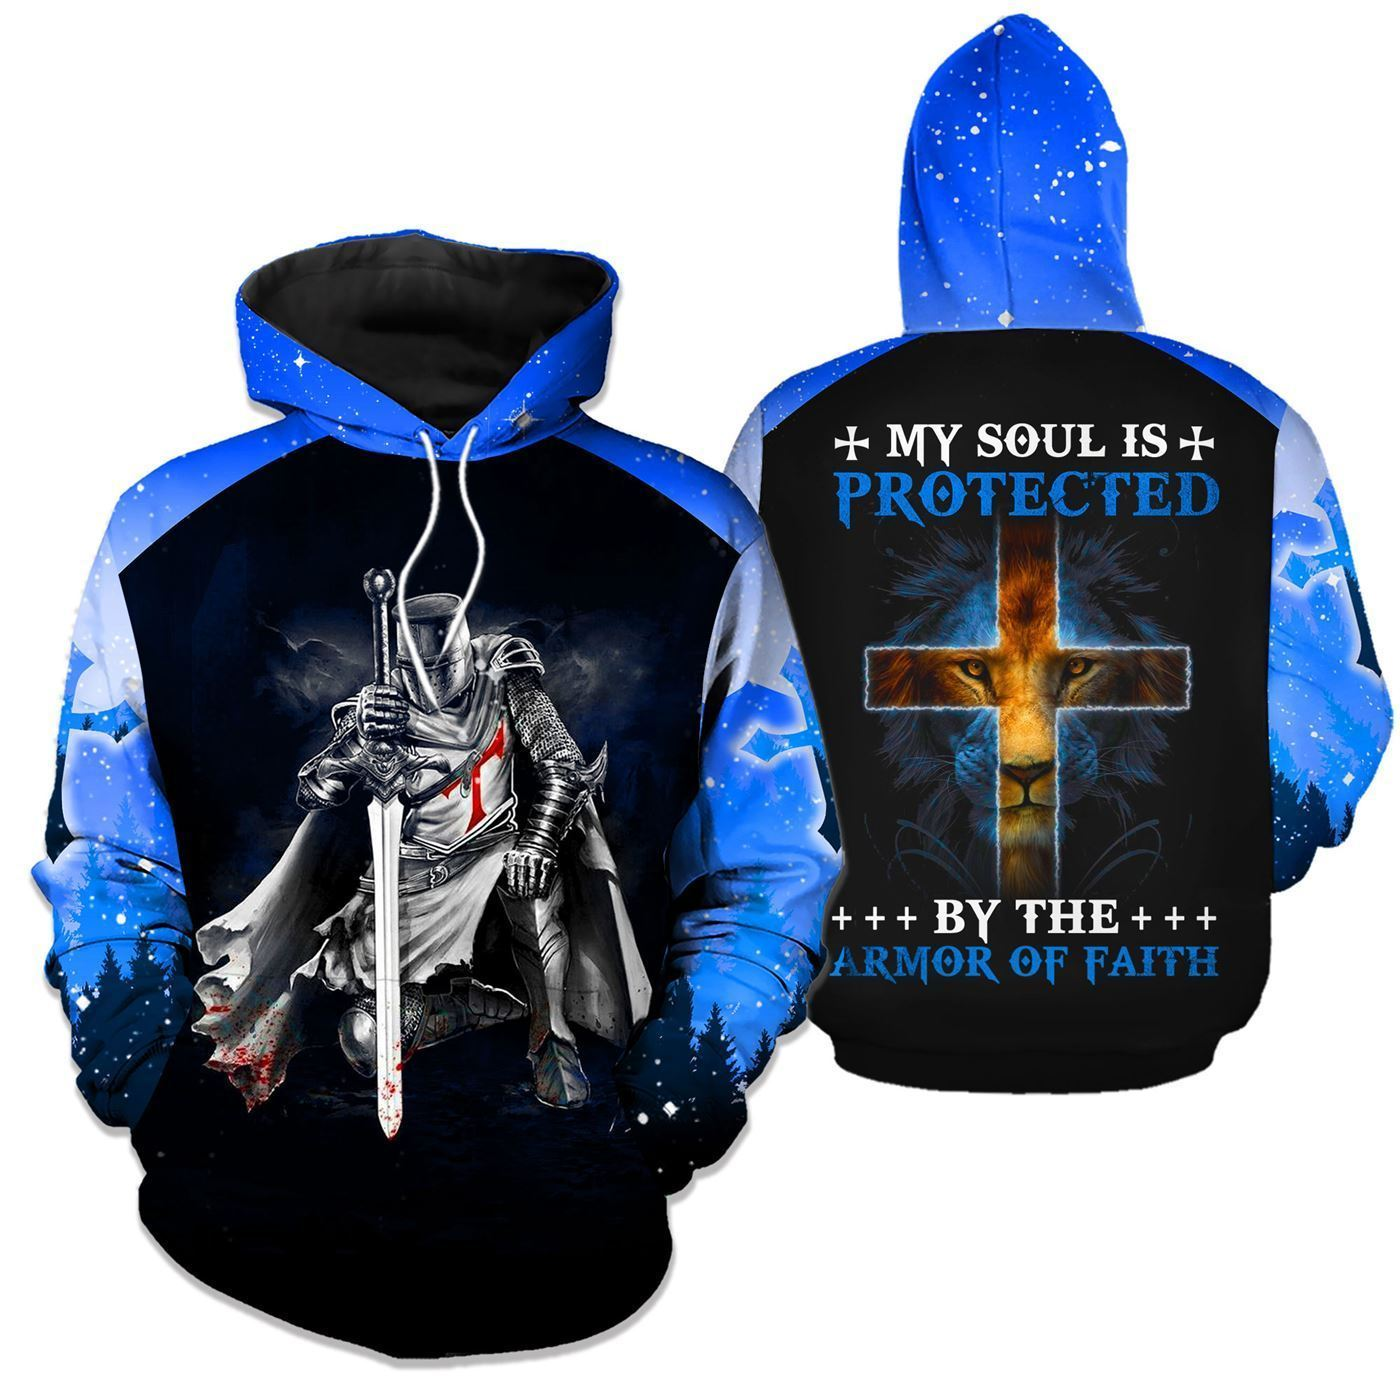 3D Christian Apparel - My Soul Is Protected By The Armor of Faith - GnWarriors Clothing